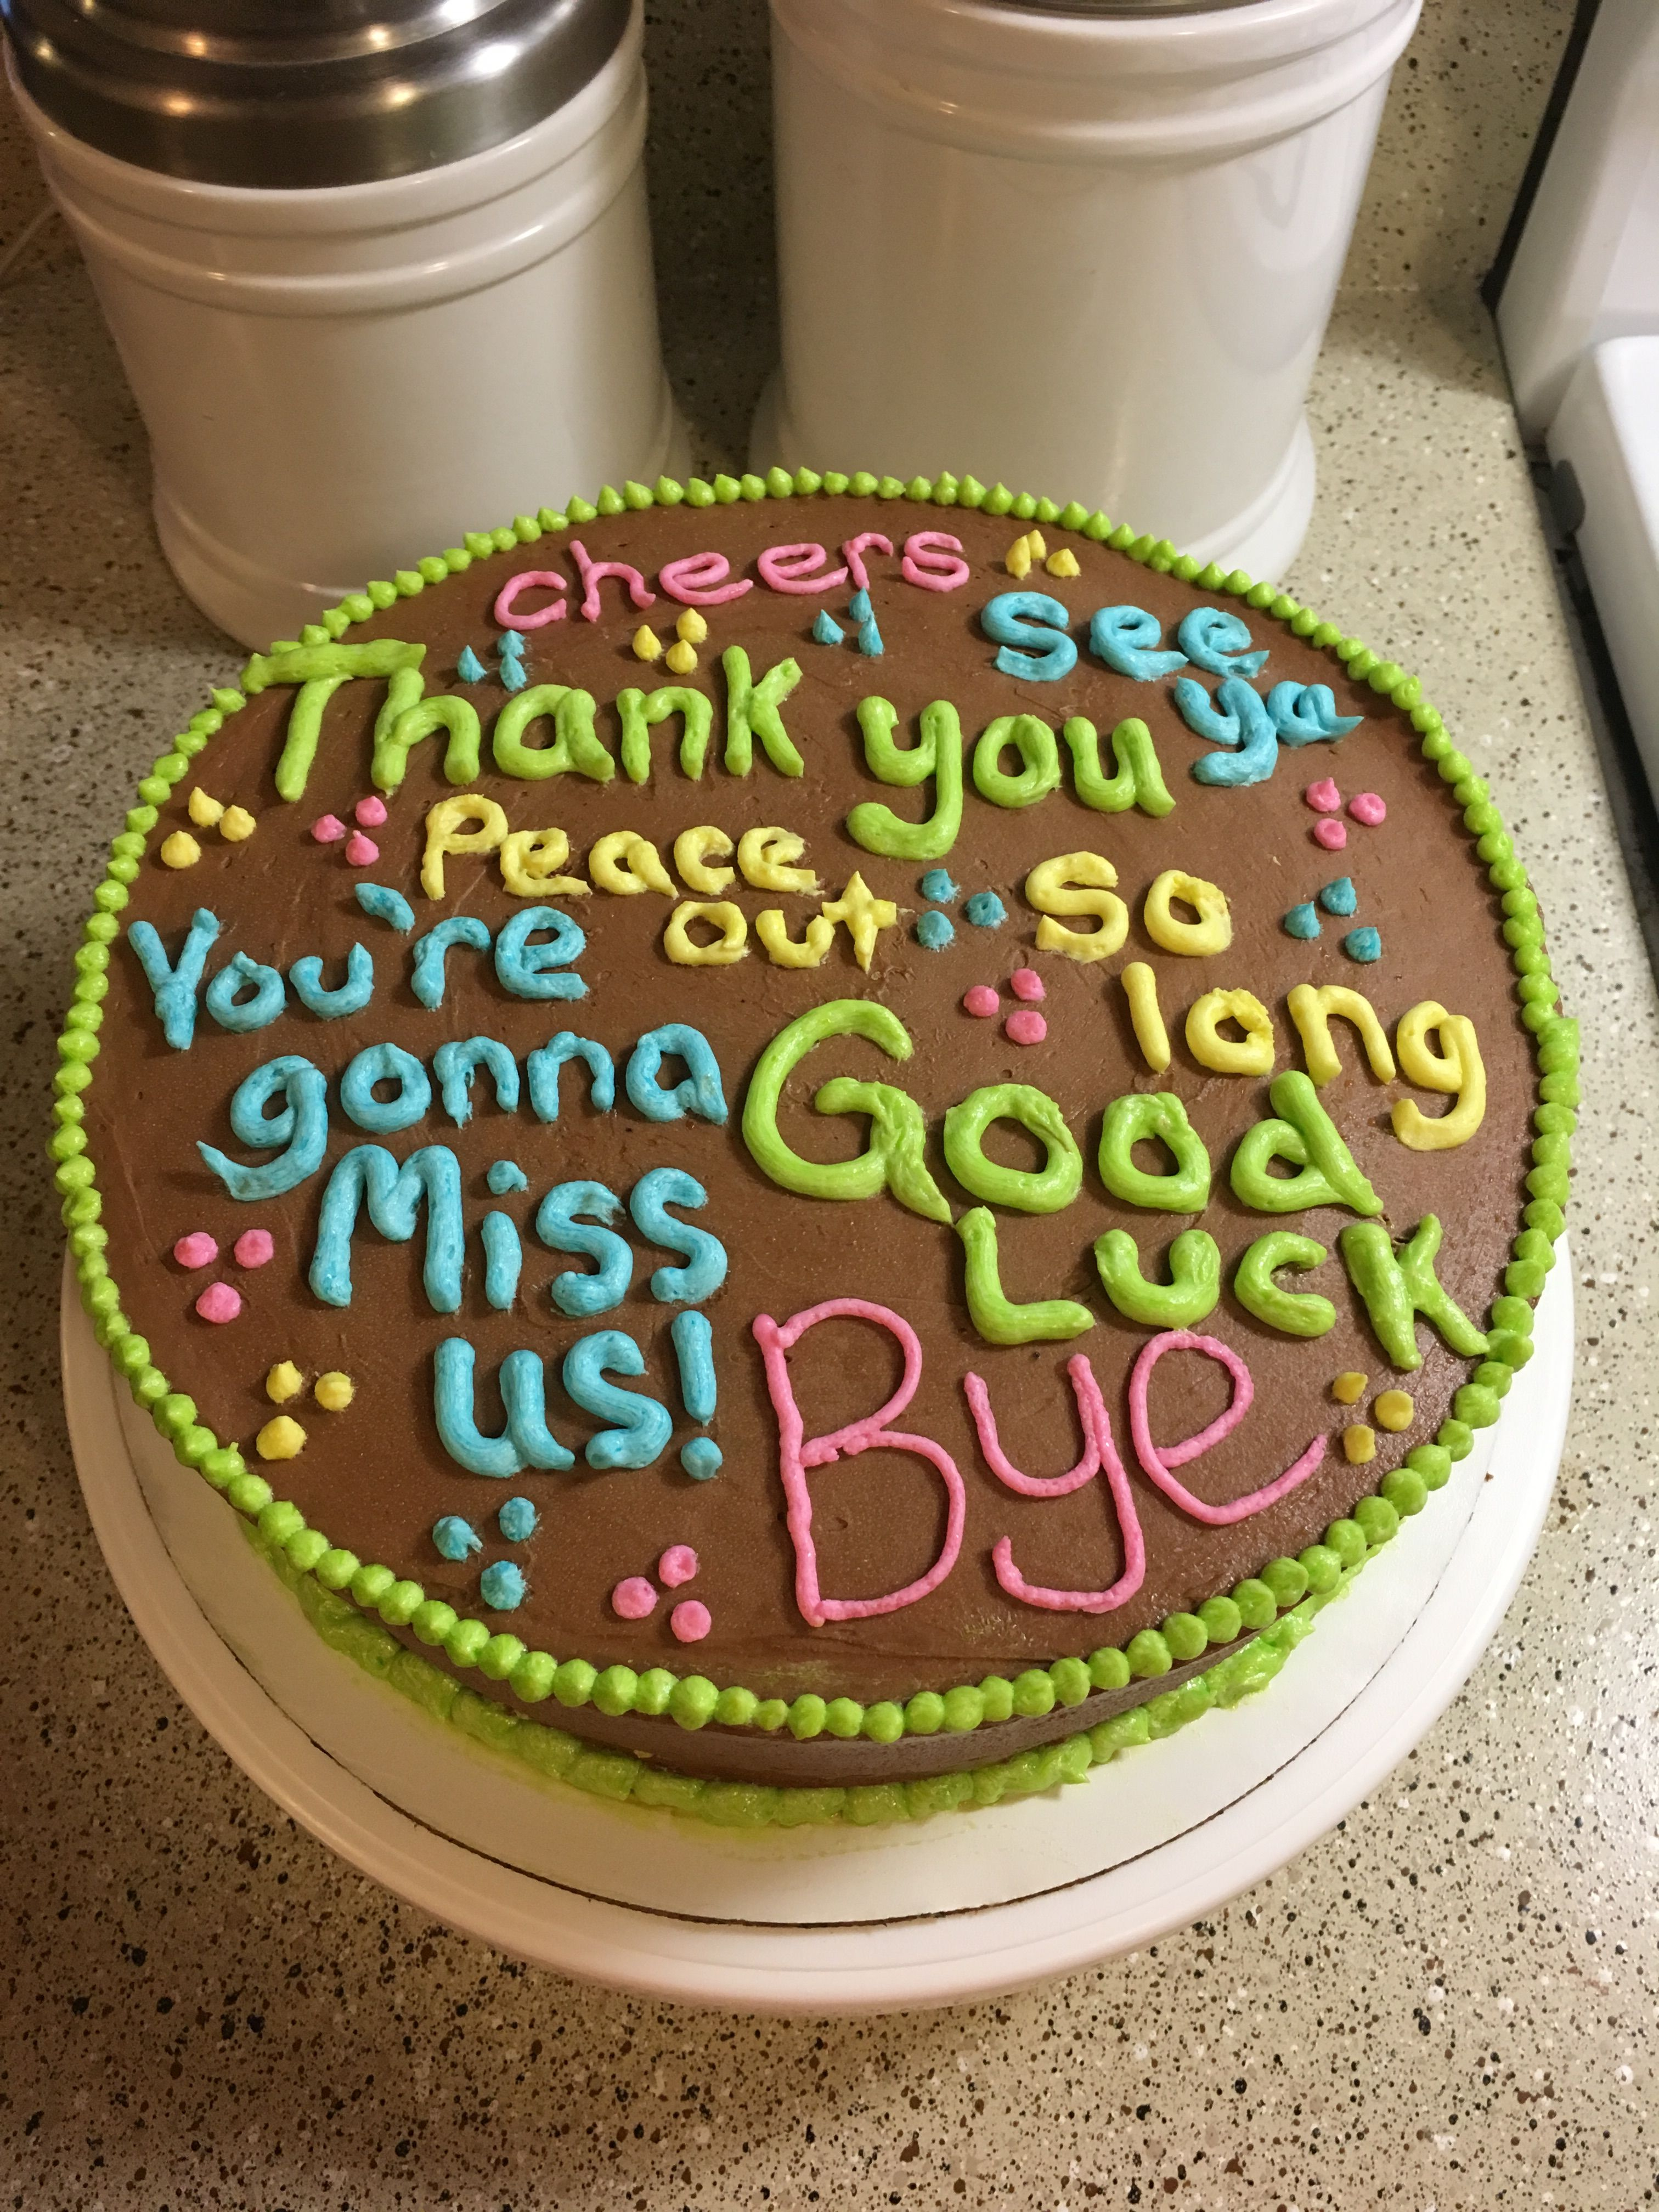 Farewell Cake Sayings : farewell, sayings, Goodbye, Lady!, You're, Gonna, Going, Cakes,, Cake,, School